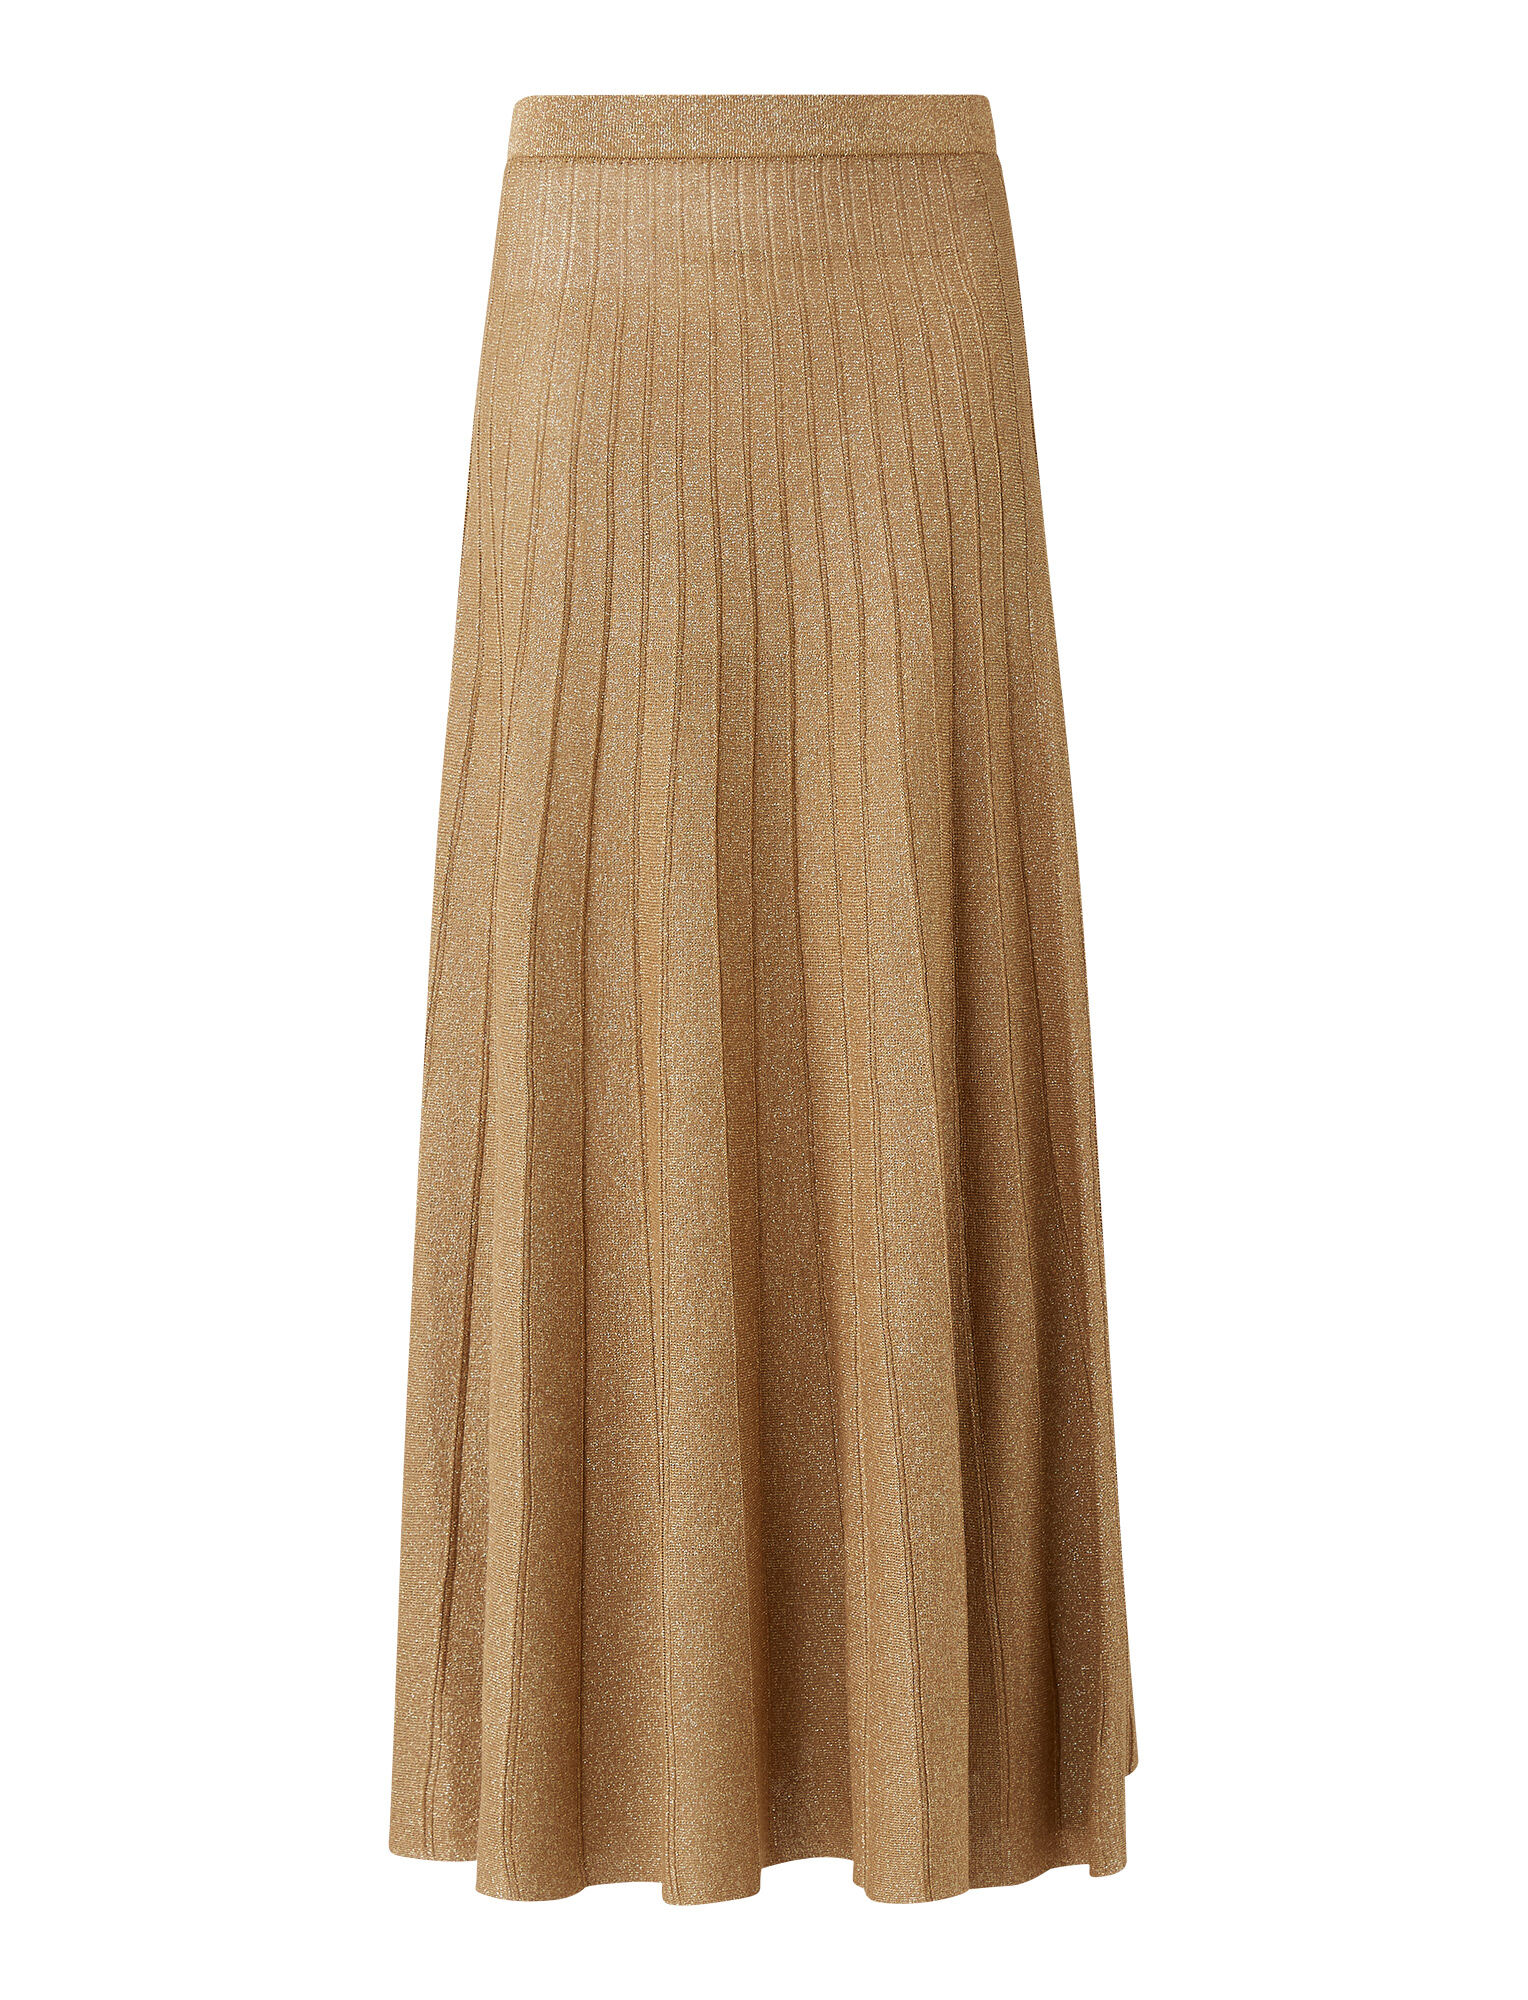 Joseph, Lurex Skirt, in CHAMPAGNE